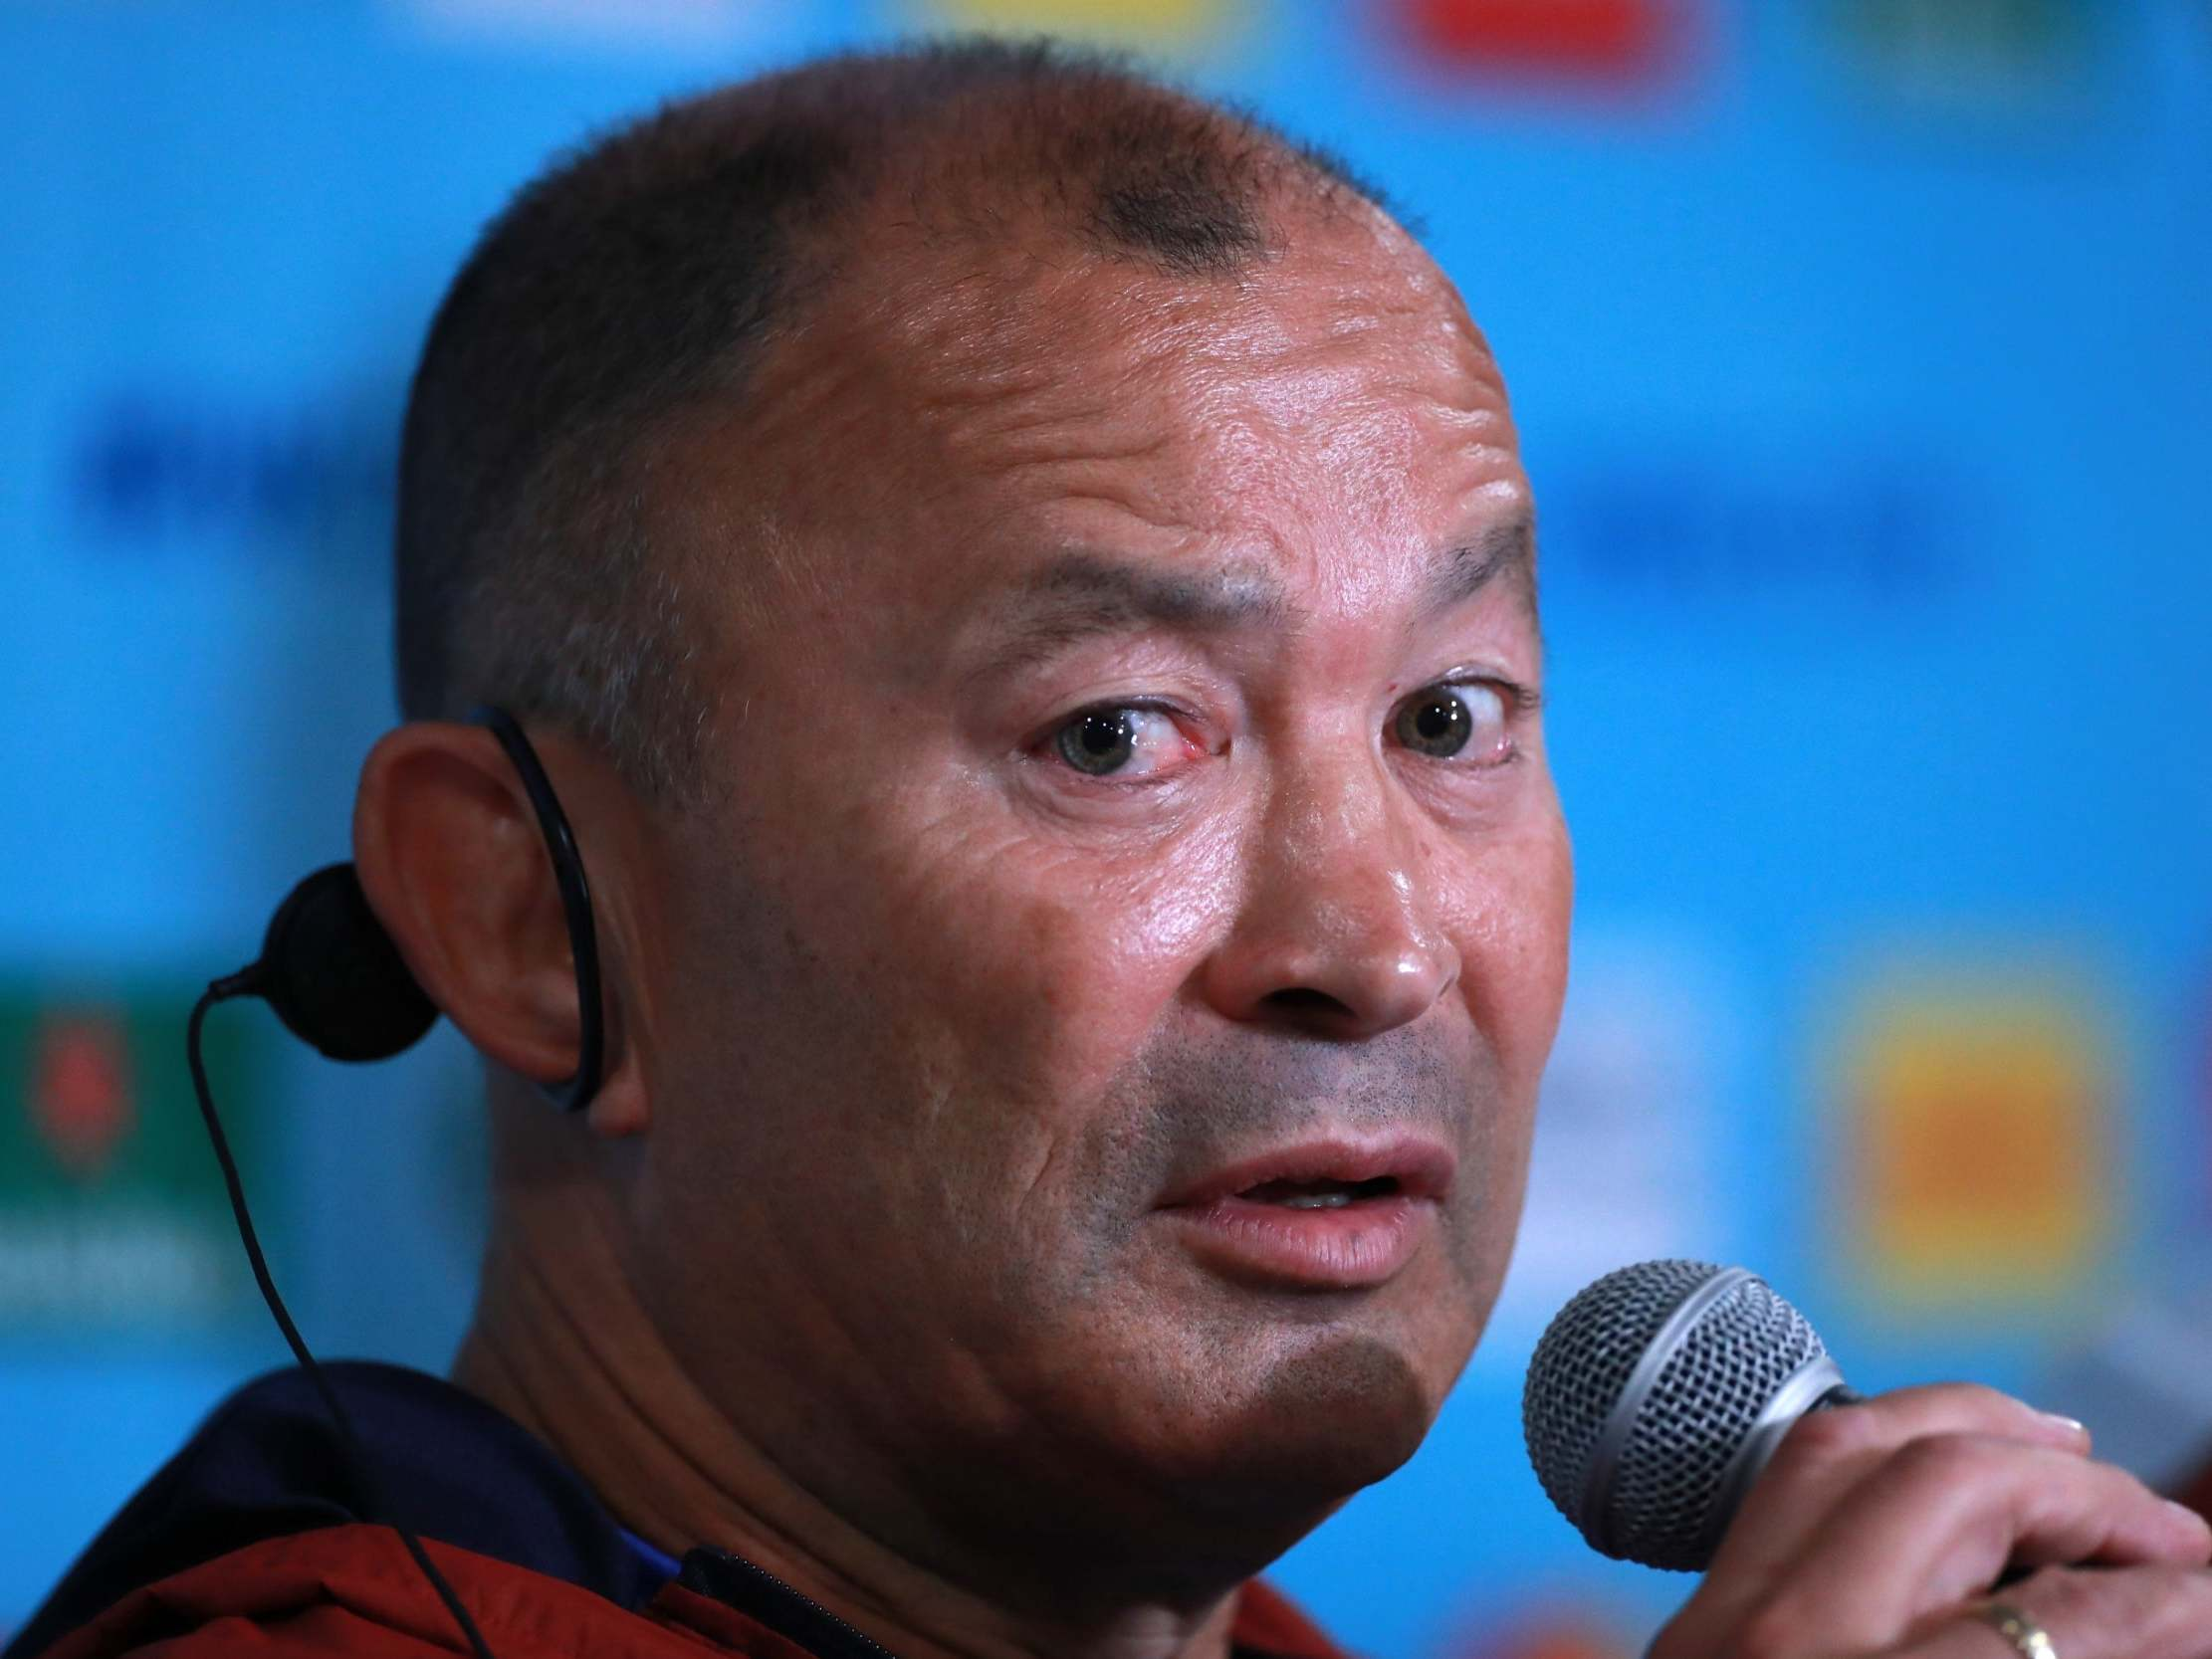 Rugby World Cup 2019: Eddie Jones explains why he has dropped George Ford for England vs Australia